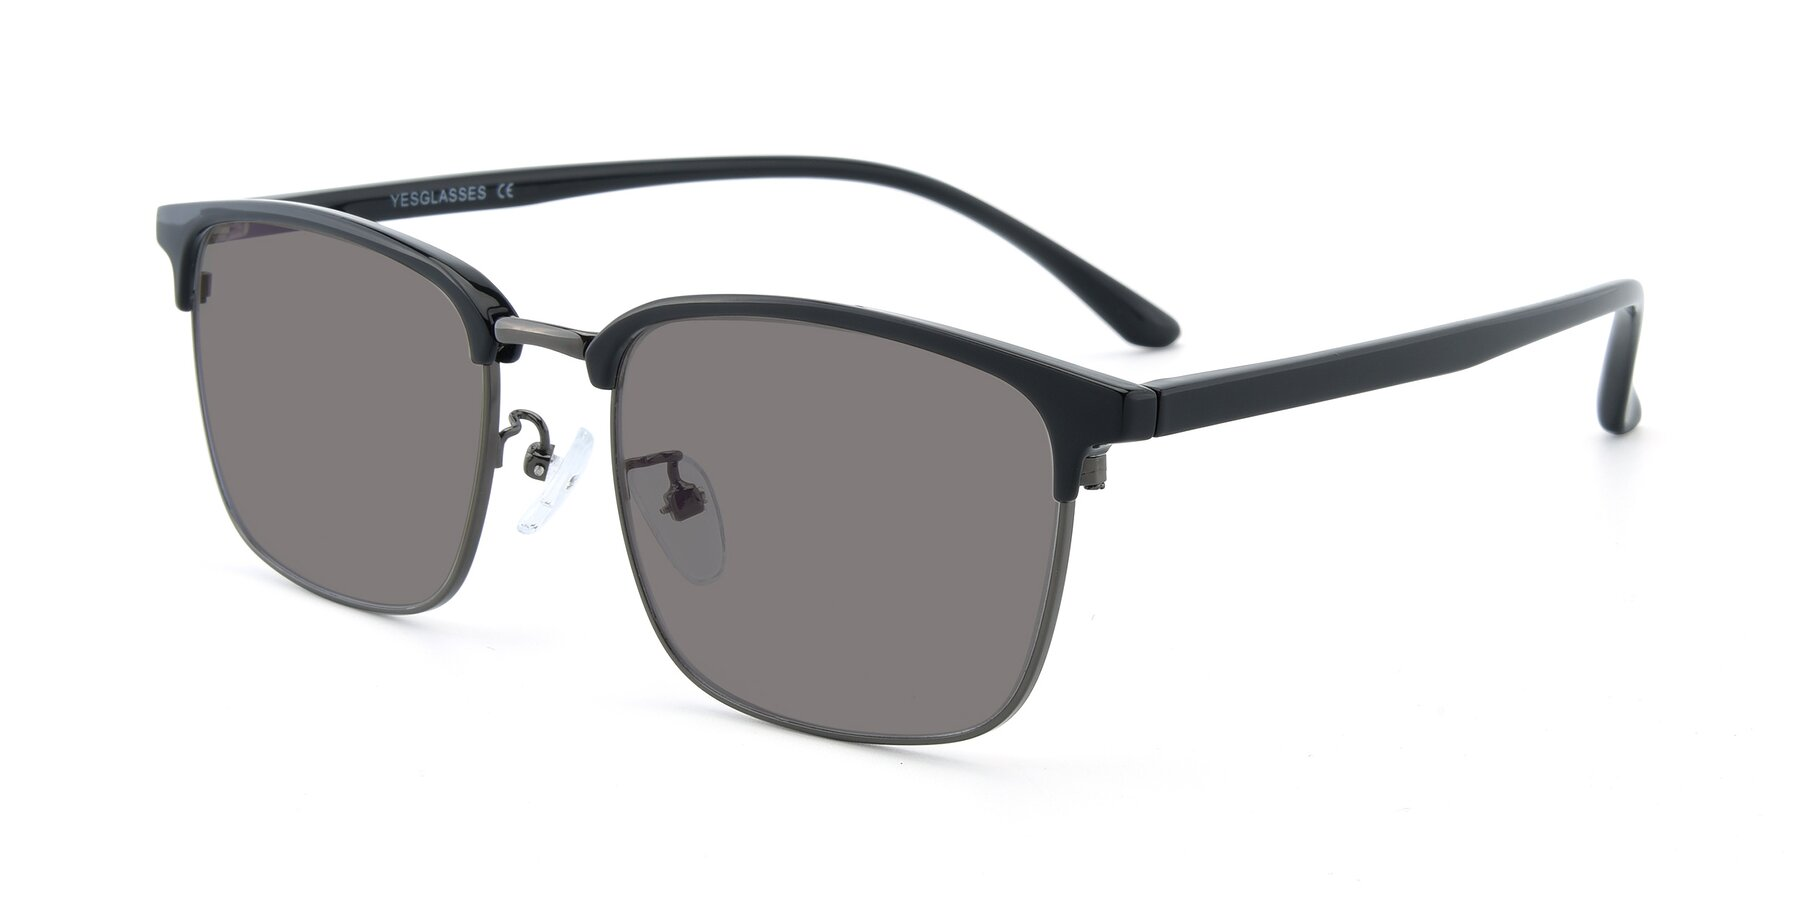 Angle of 00340 in Black-Gun with Medium Gray Tinted Lenses